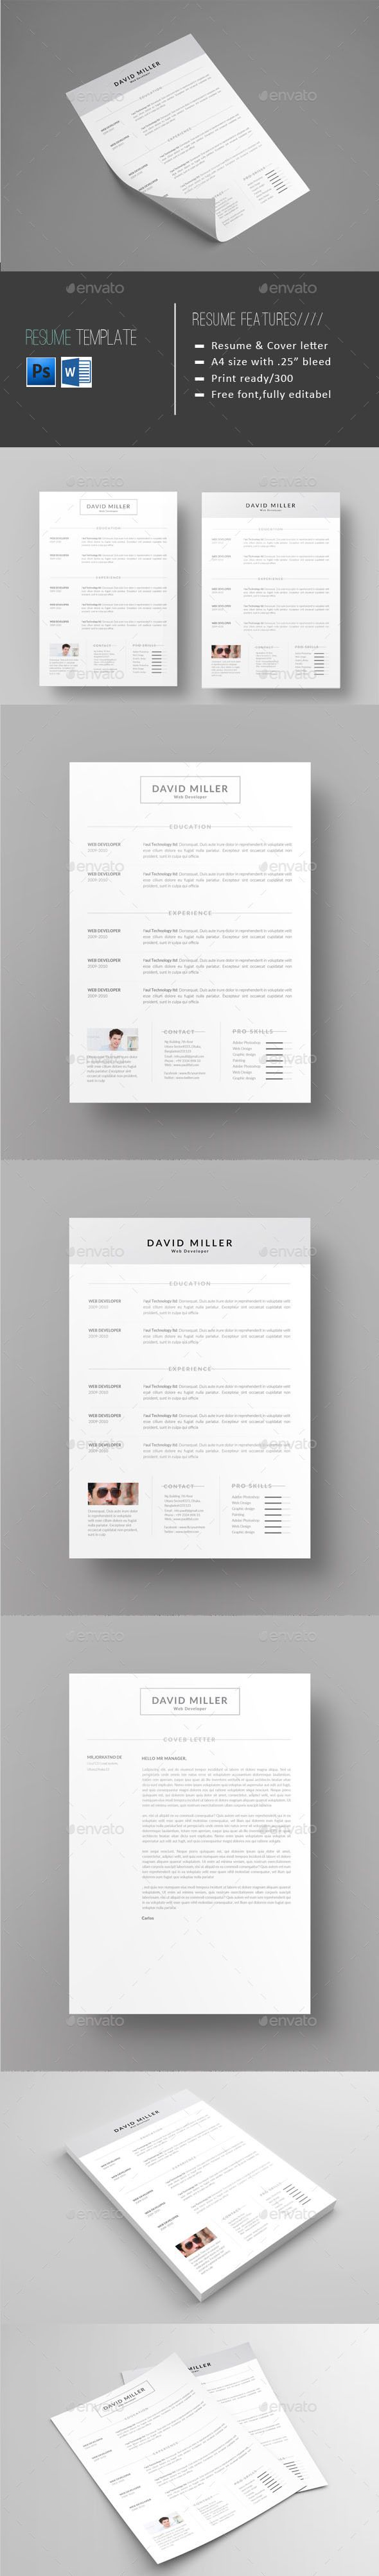 receptionist sample resume%0A Resume Design Template  Resumes Stationery Template PSD  Download here   https